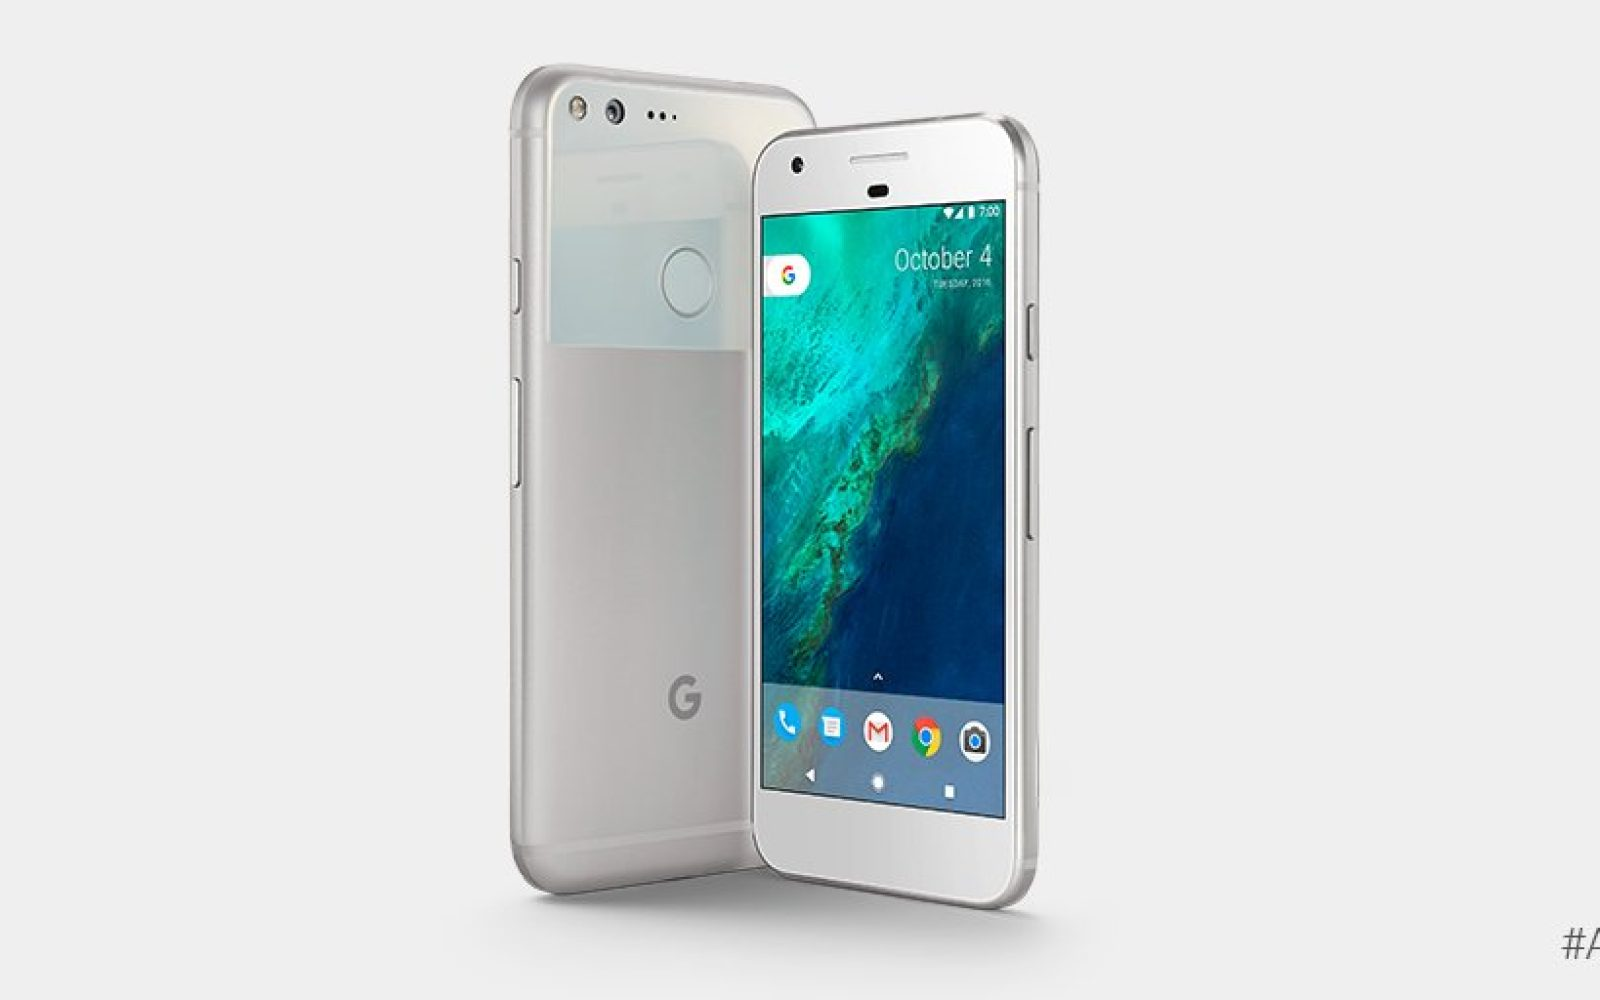 As Google takes an end-to-end approach to its Pixel line, it no longer plans to make any new Nexus device